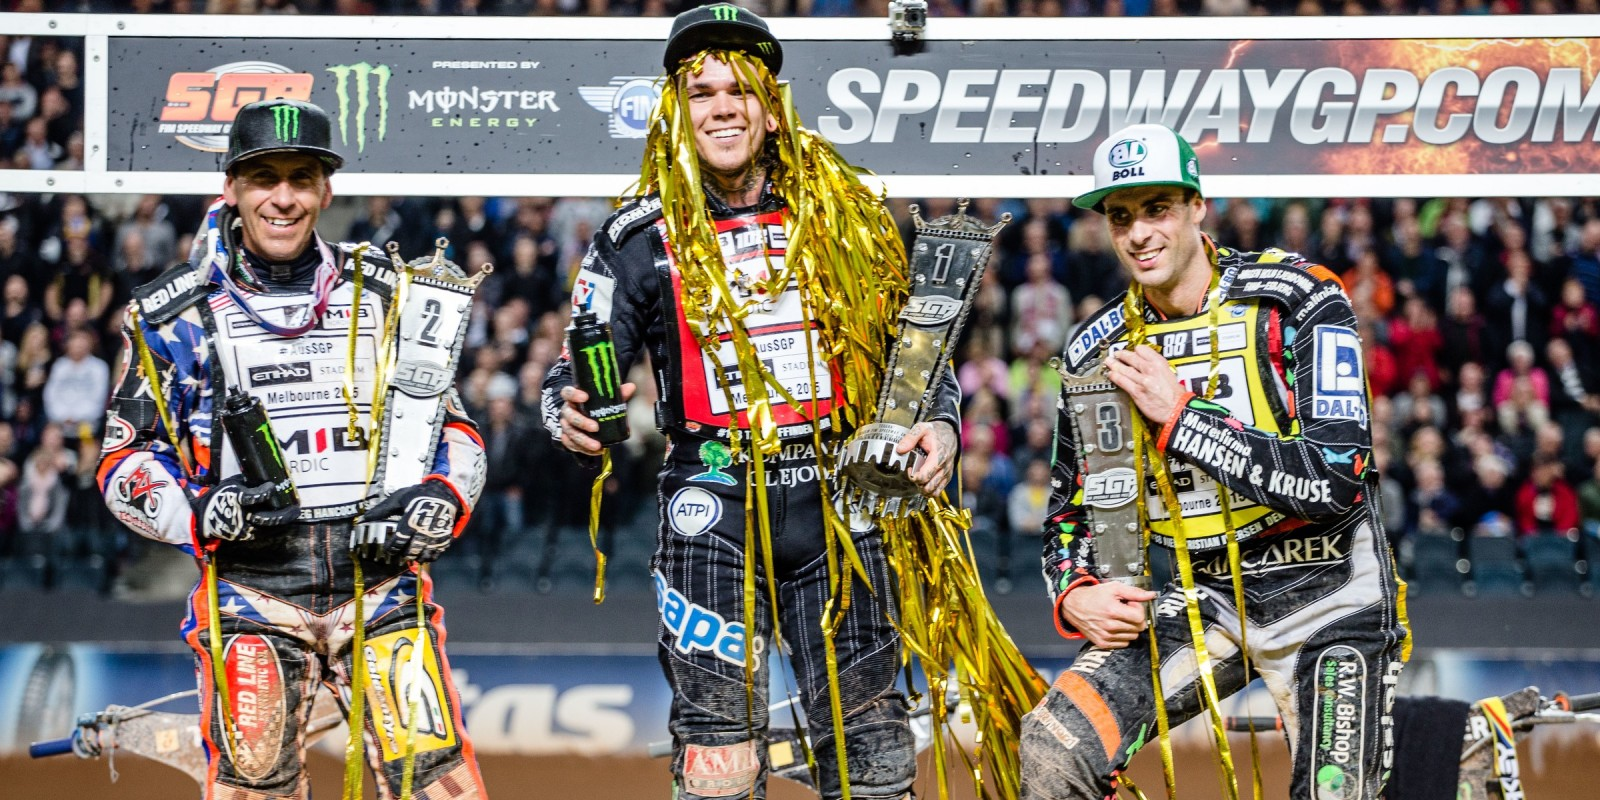 Greg Hancock and Tai Woffinden at the 2015 Stockholm Speedway Grand Prix